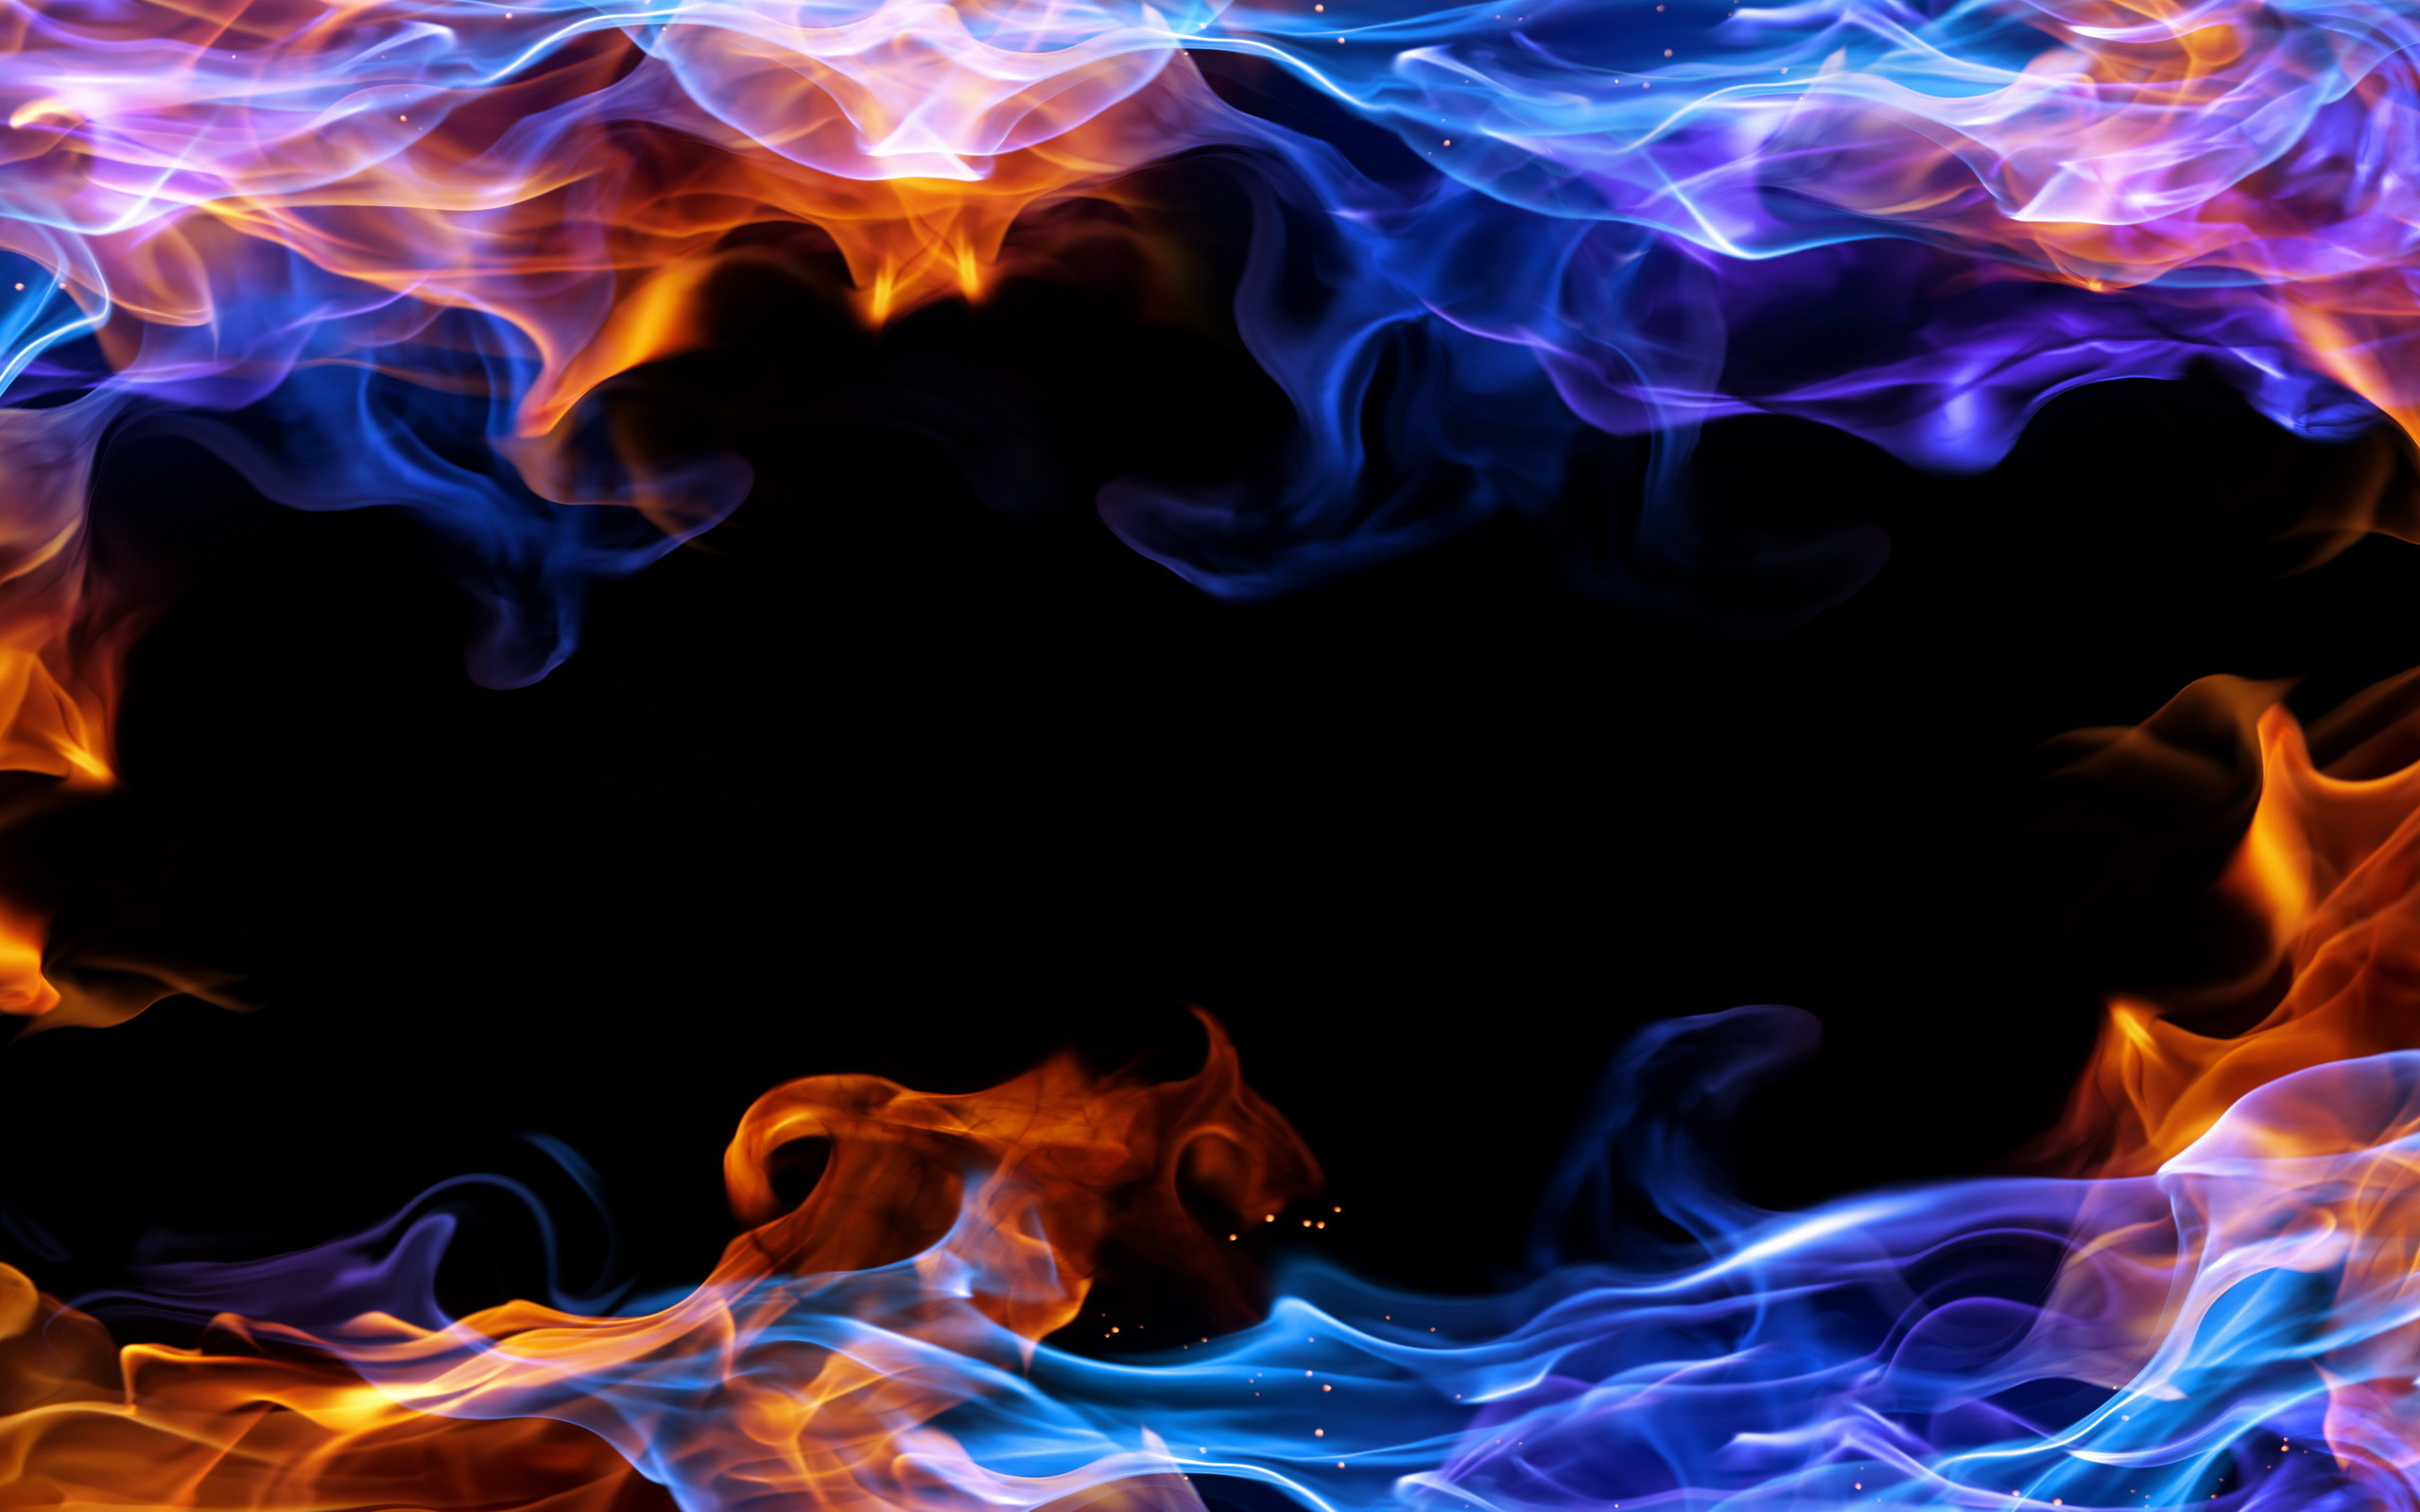 Brandweer Behang Blue Fire Wallpaper Hd 70 43 Images